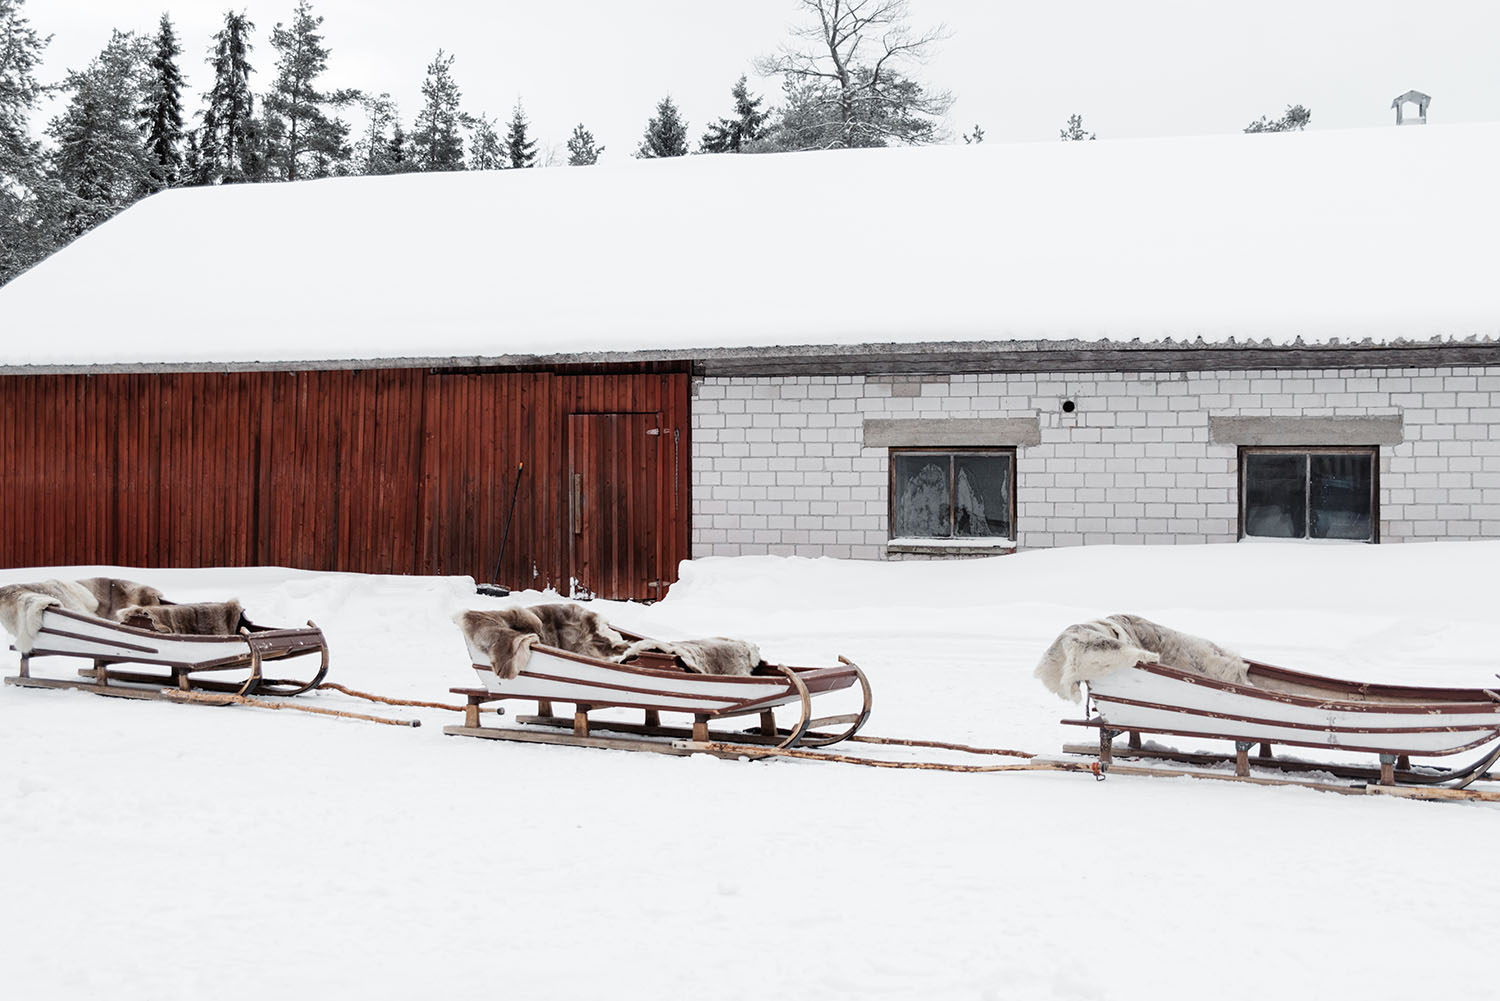 Sleds at Poro-Panuma Reindeer Farm in Finland